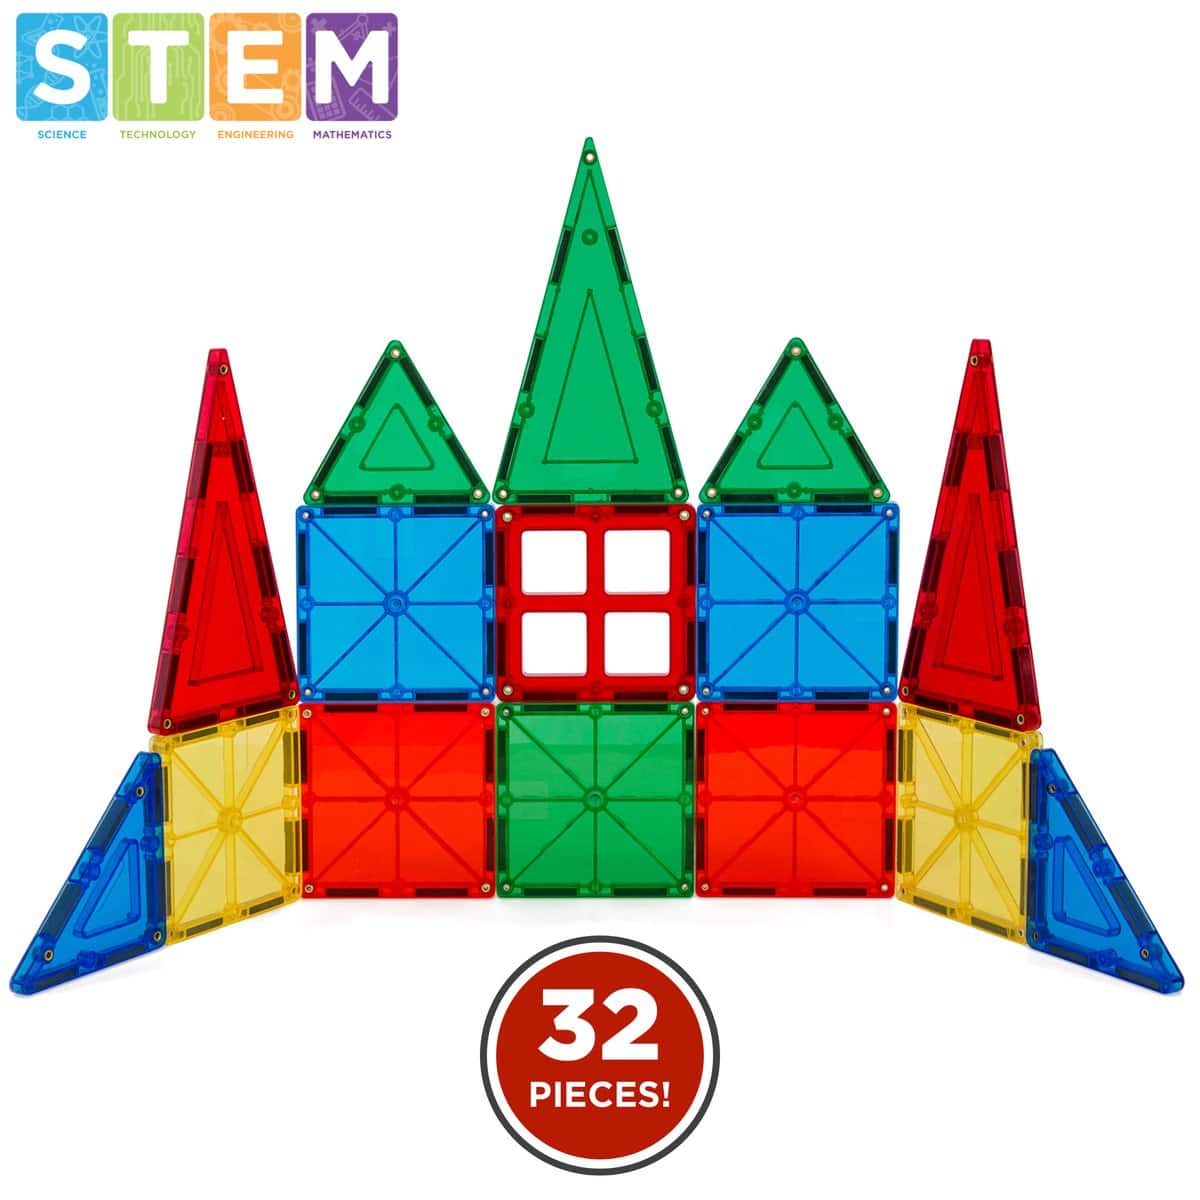 32-Piece Kids Magnetic Building Tiles Toy Set w/ Carrying Case $19.99 + FS